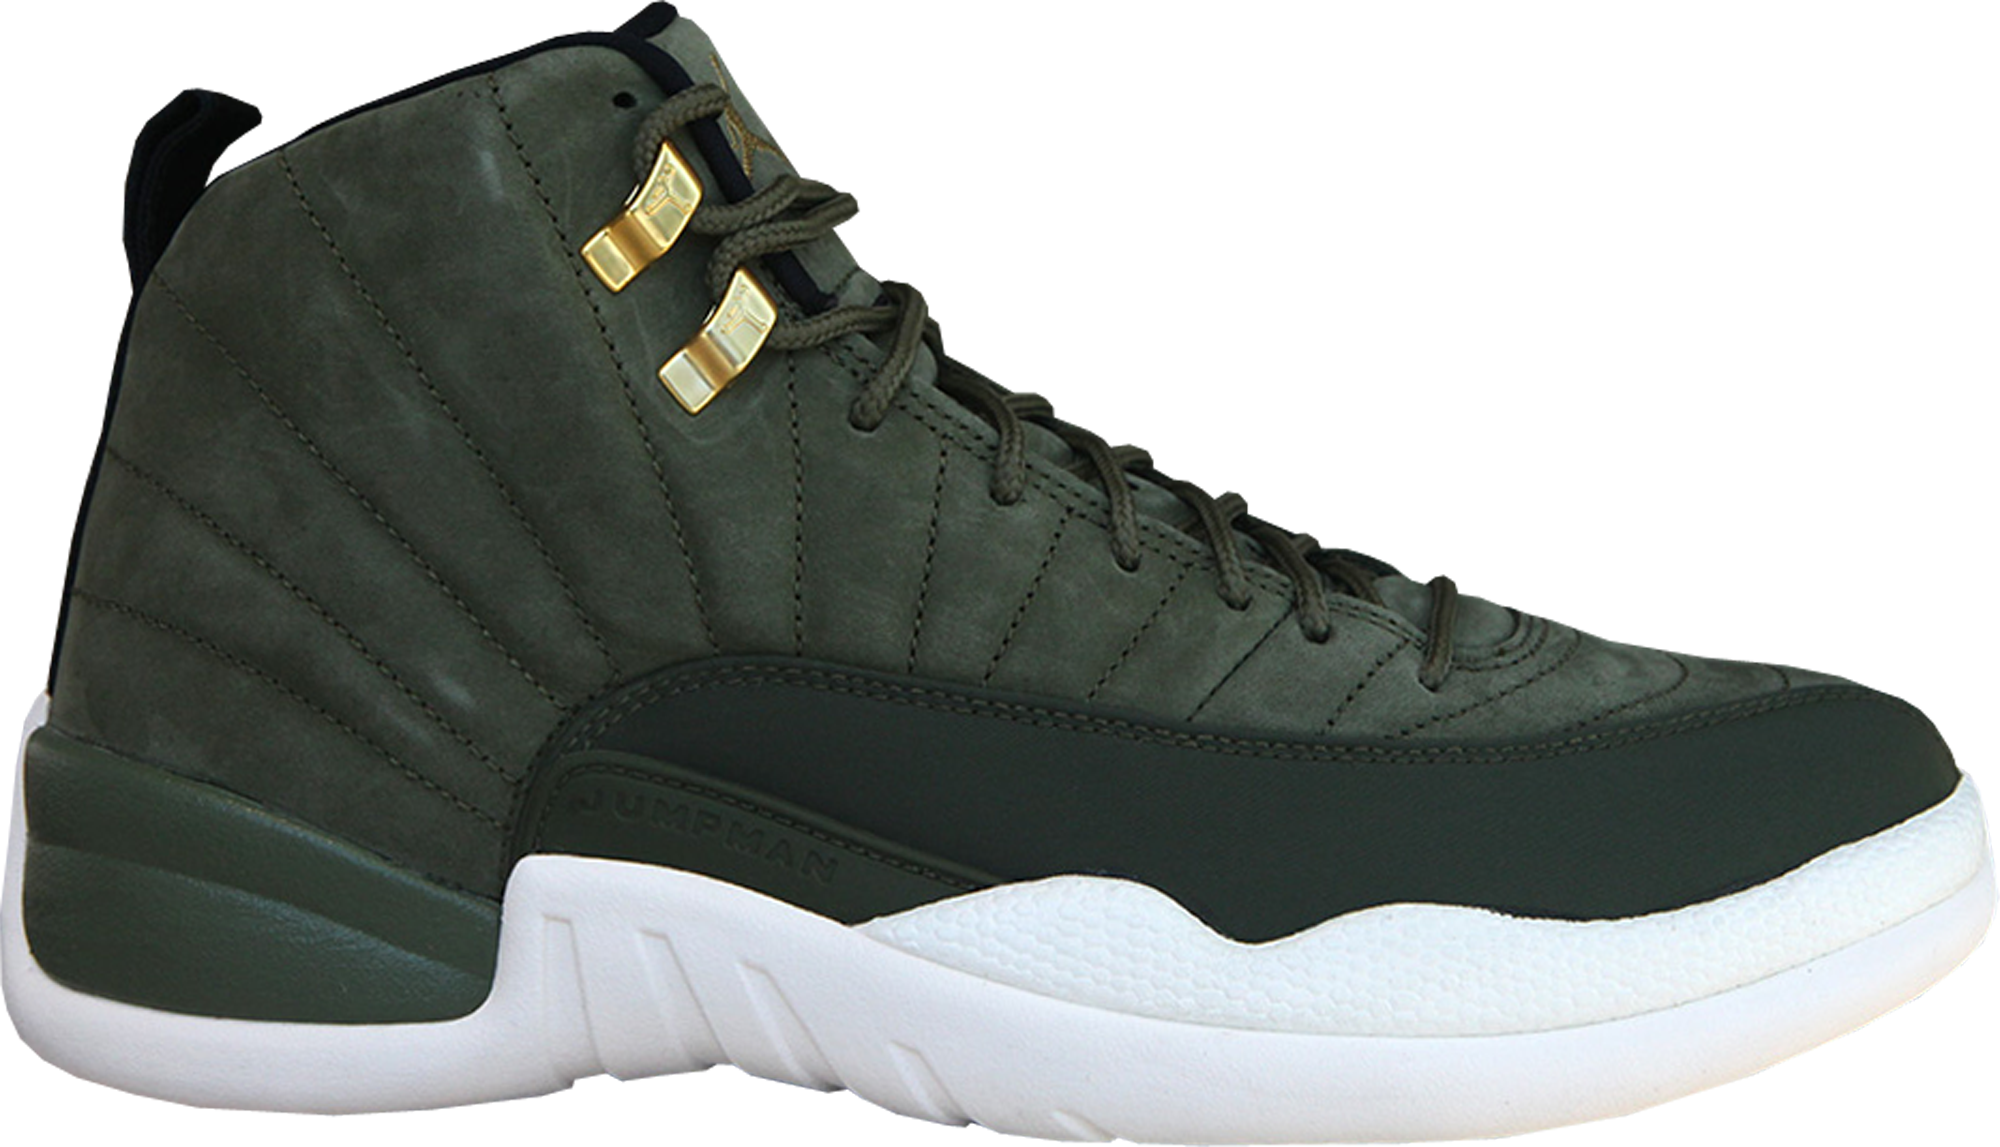 fc716b8707d Air Jordan 12 Chris Paul Back to School